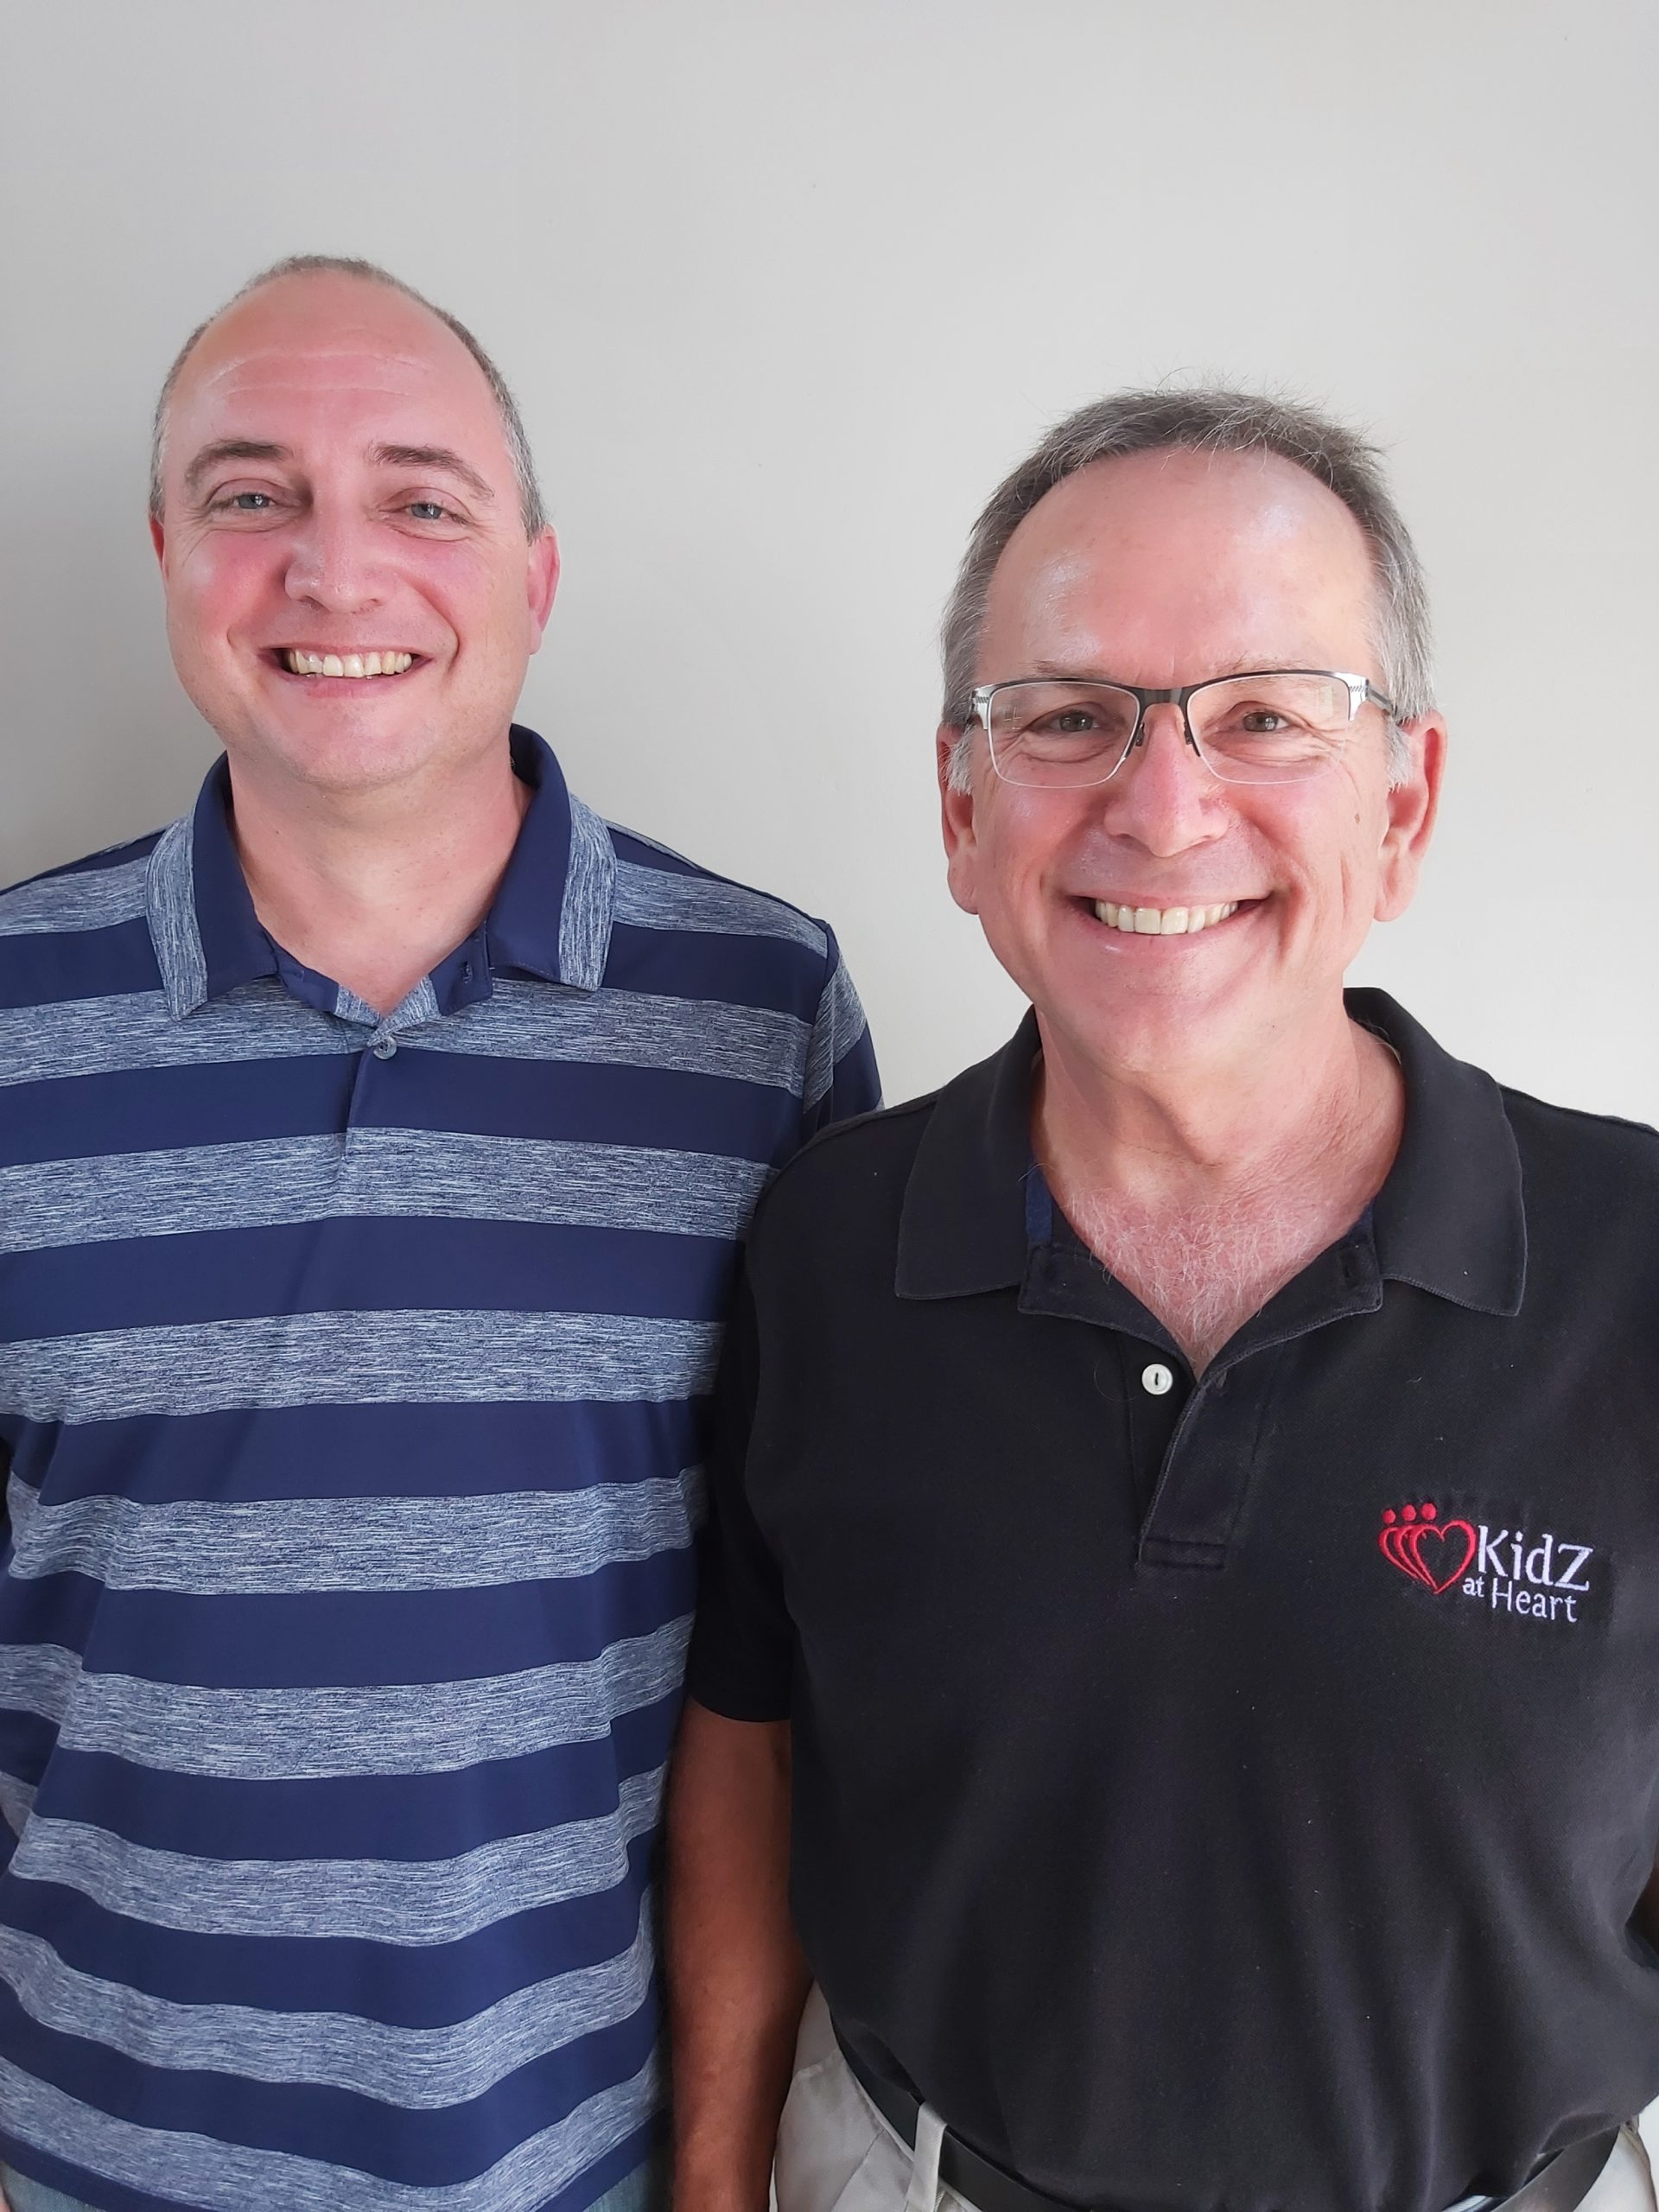 Interview with Gordon West, Founder and President of KidZ at Heart (KAH) Ministries